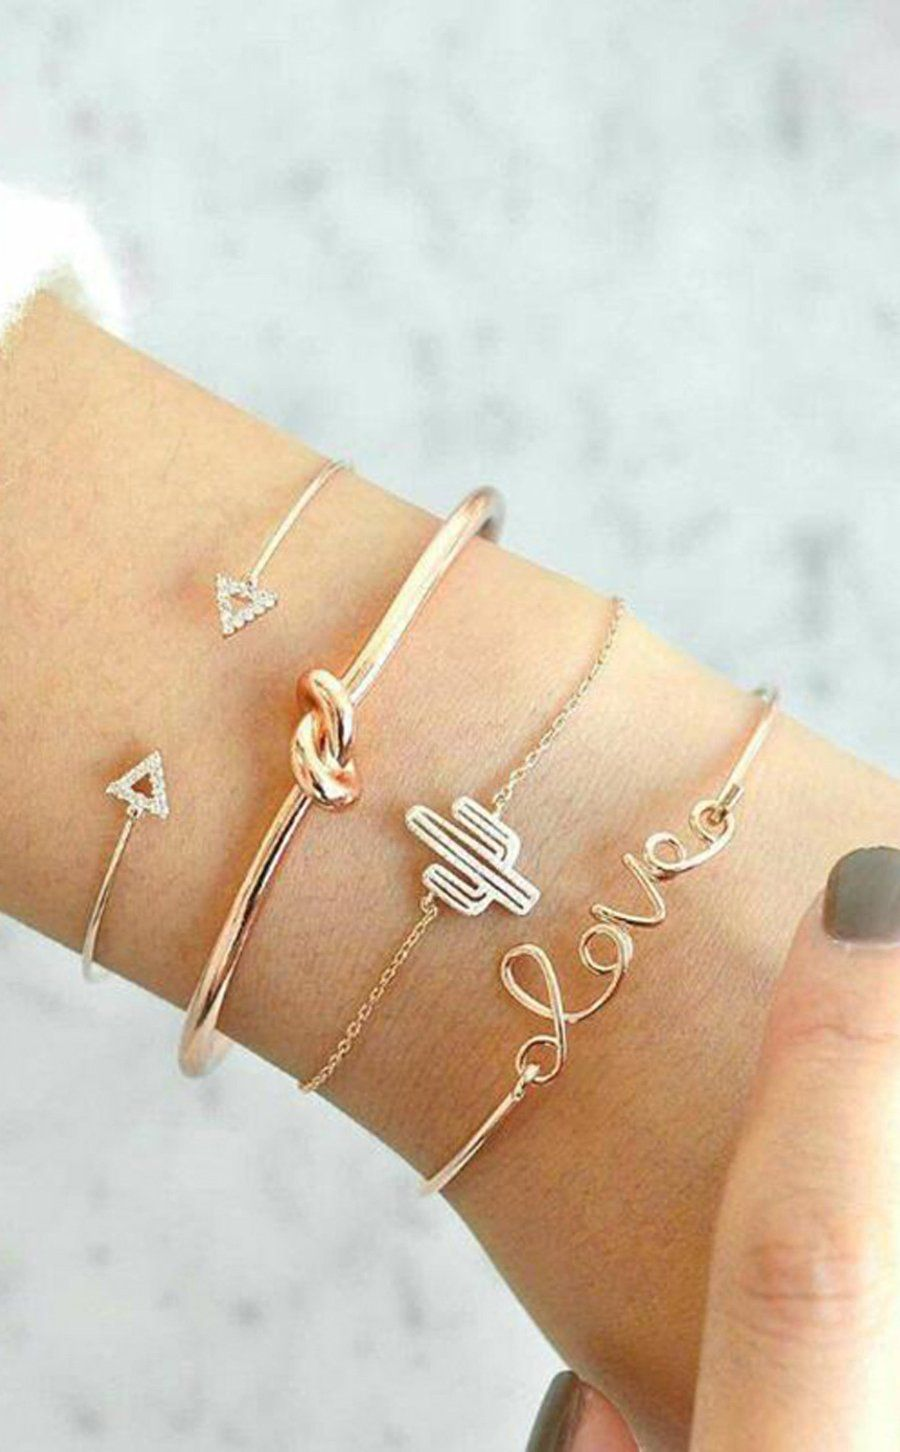 LyWill Love Bracelet Set for Women Knot Arrow Cuff Cactus Love Charm Bangle for Girl with Gold Tone